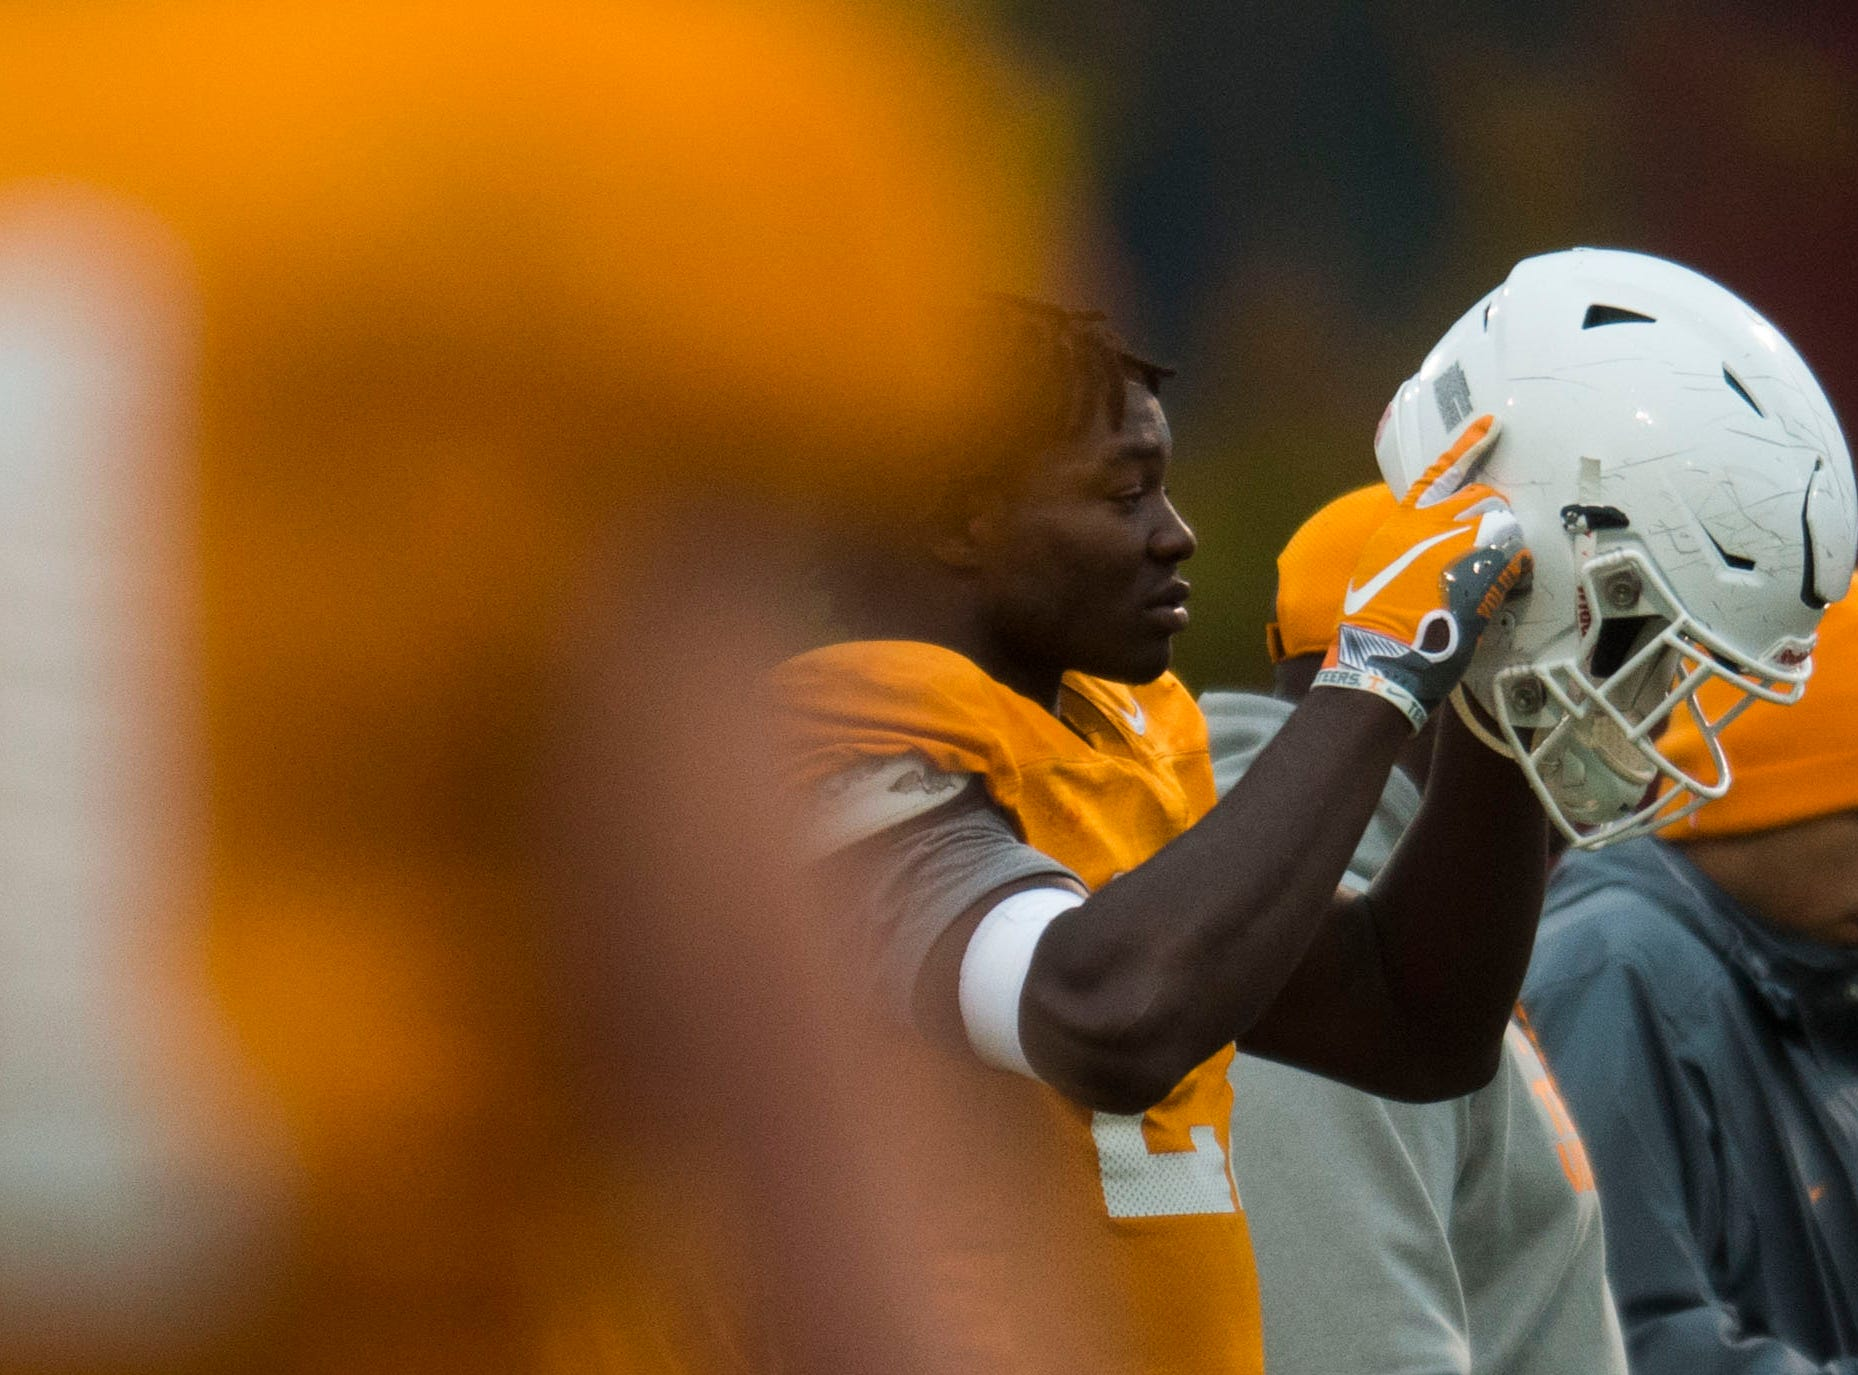 A Tennessee player puts on his helmet during a University of Tennessee football practice, Tuesday, Nov. 13, 2018.